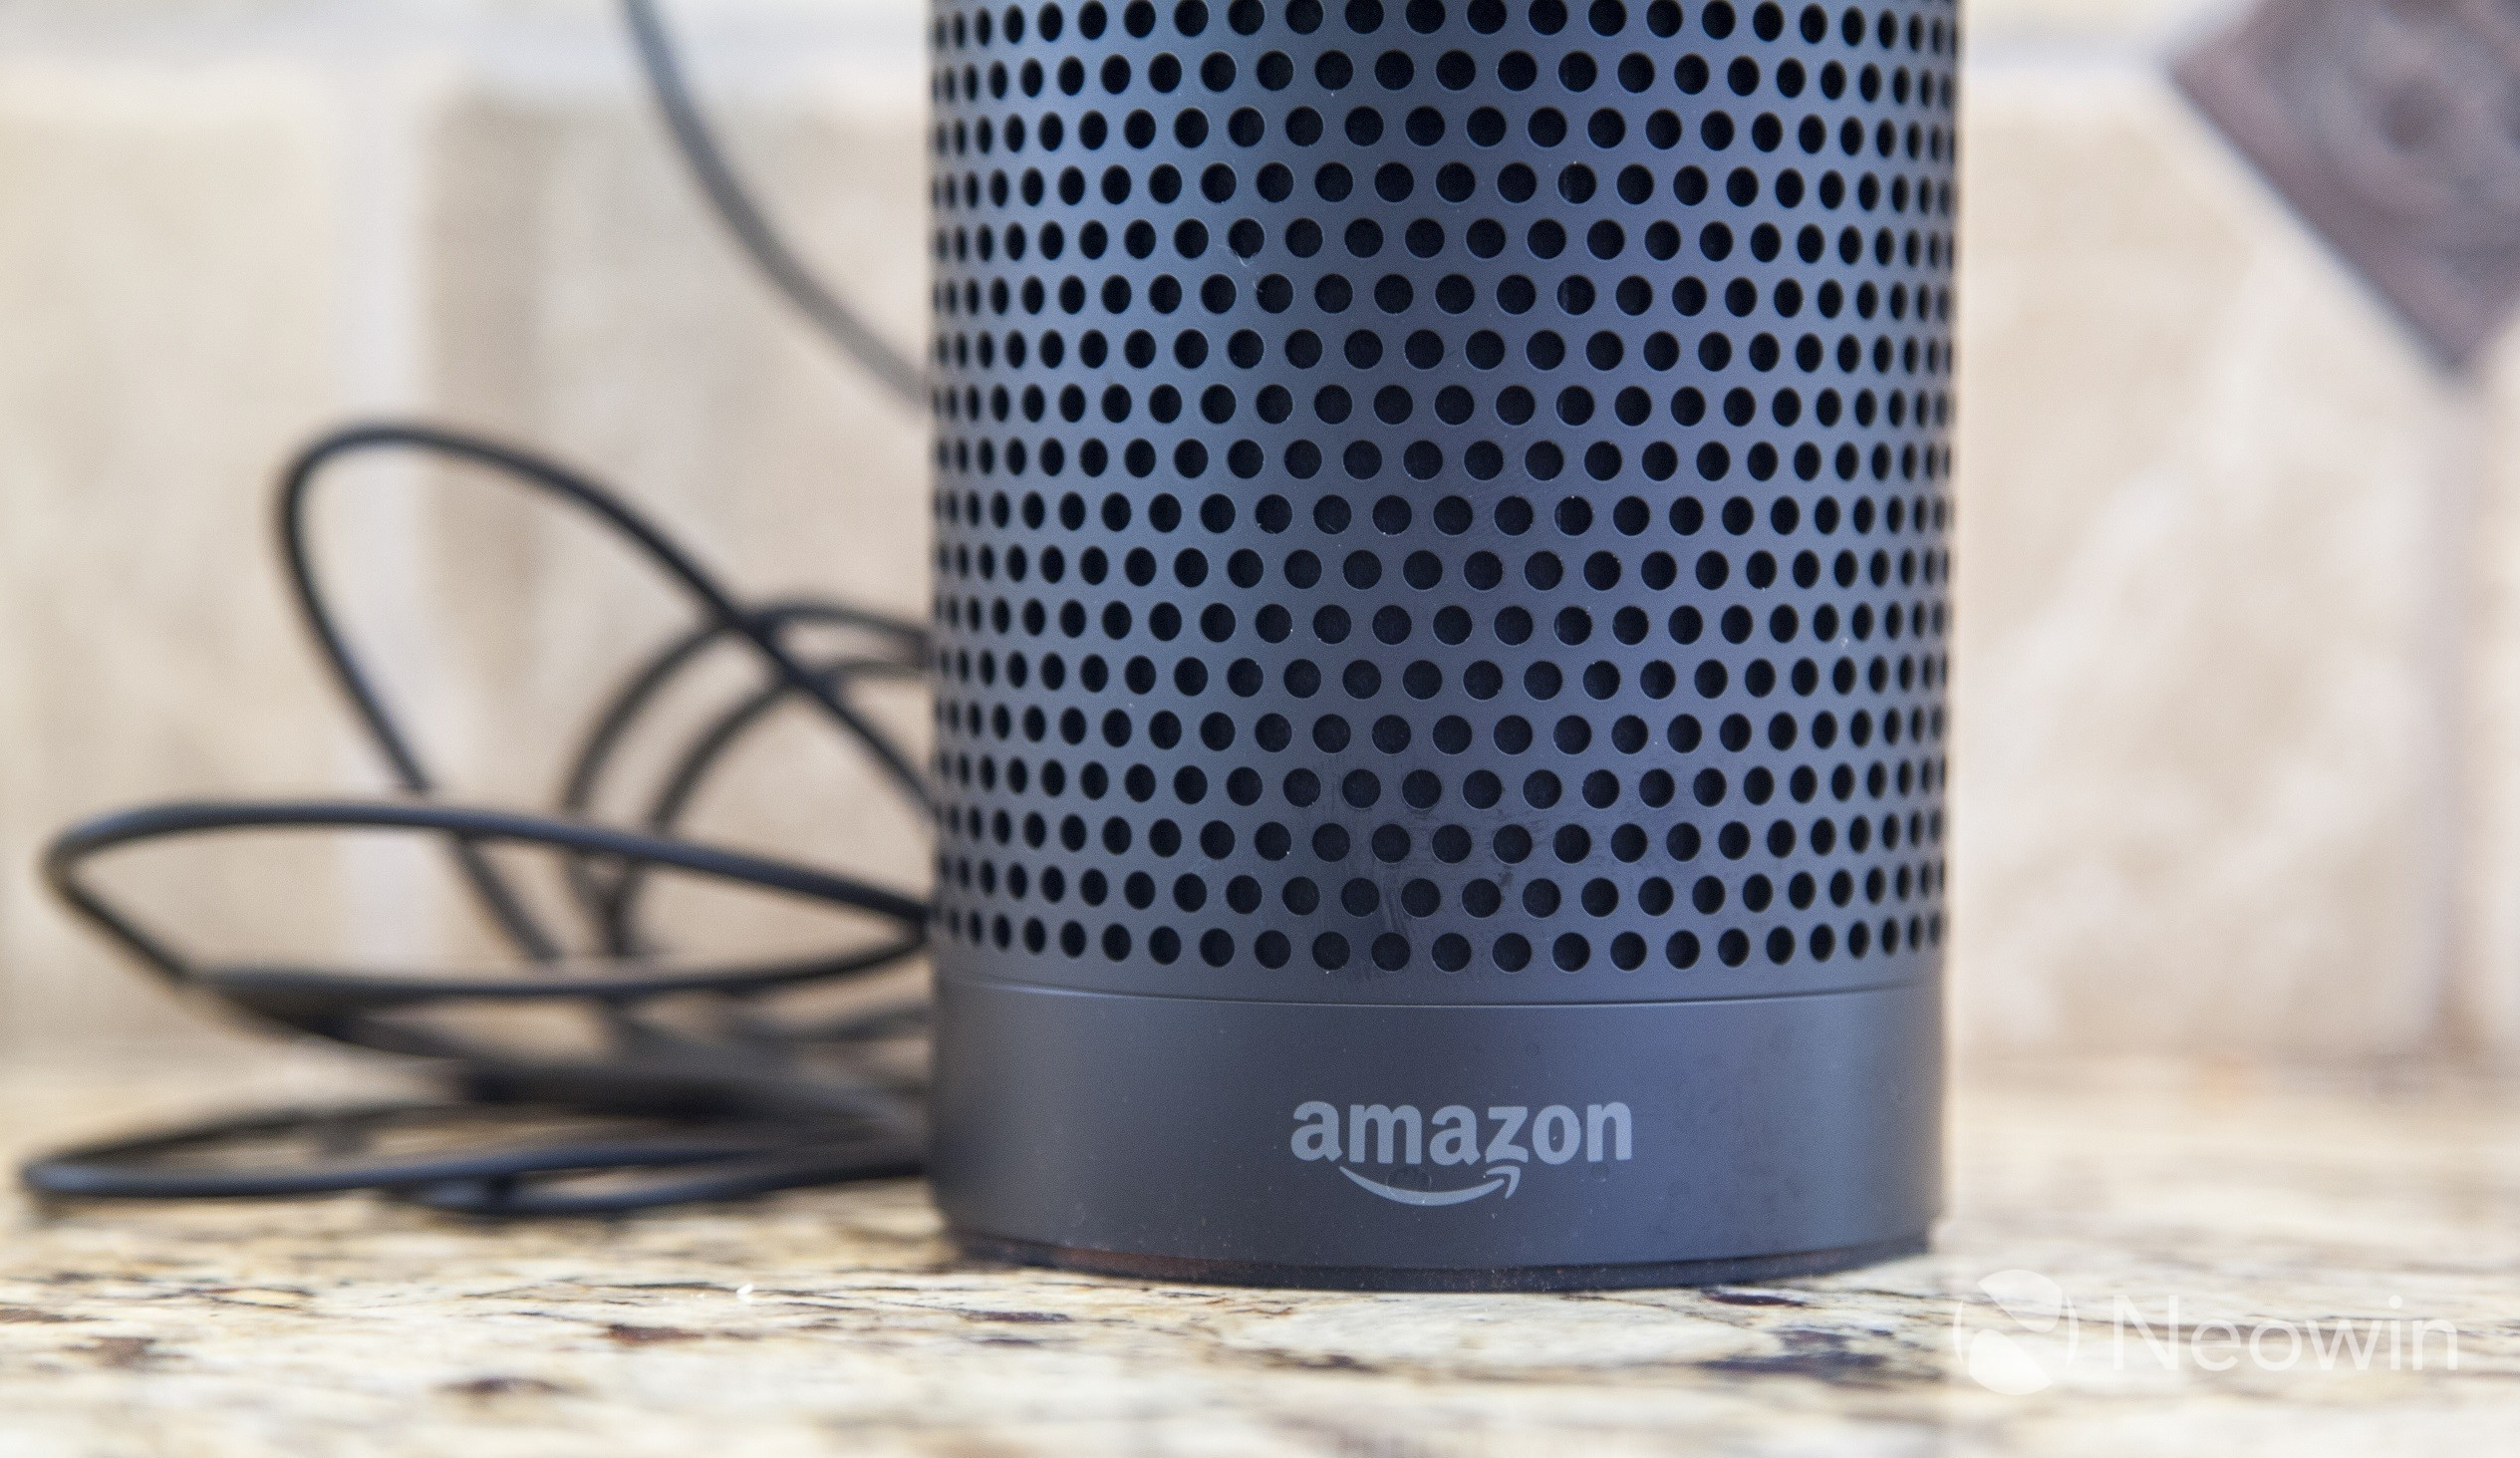 Amazon plans to release eight IoT devices